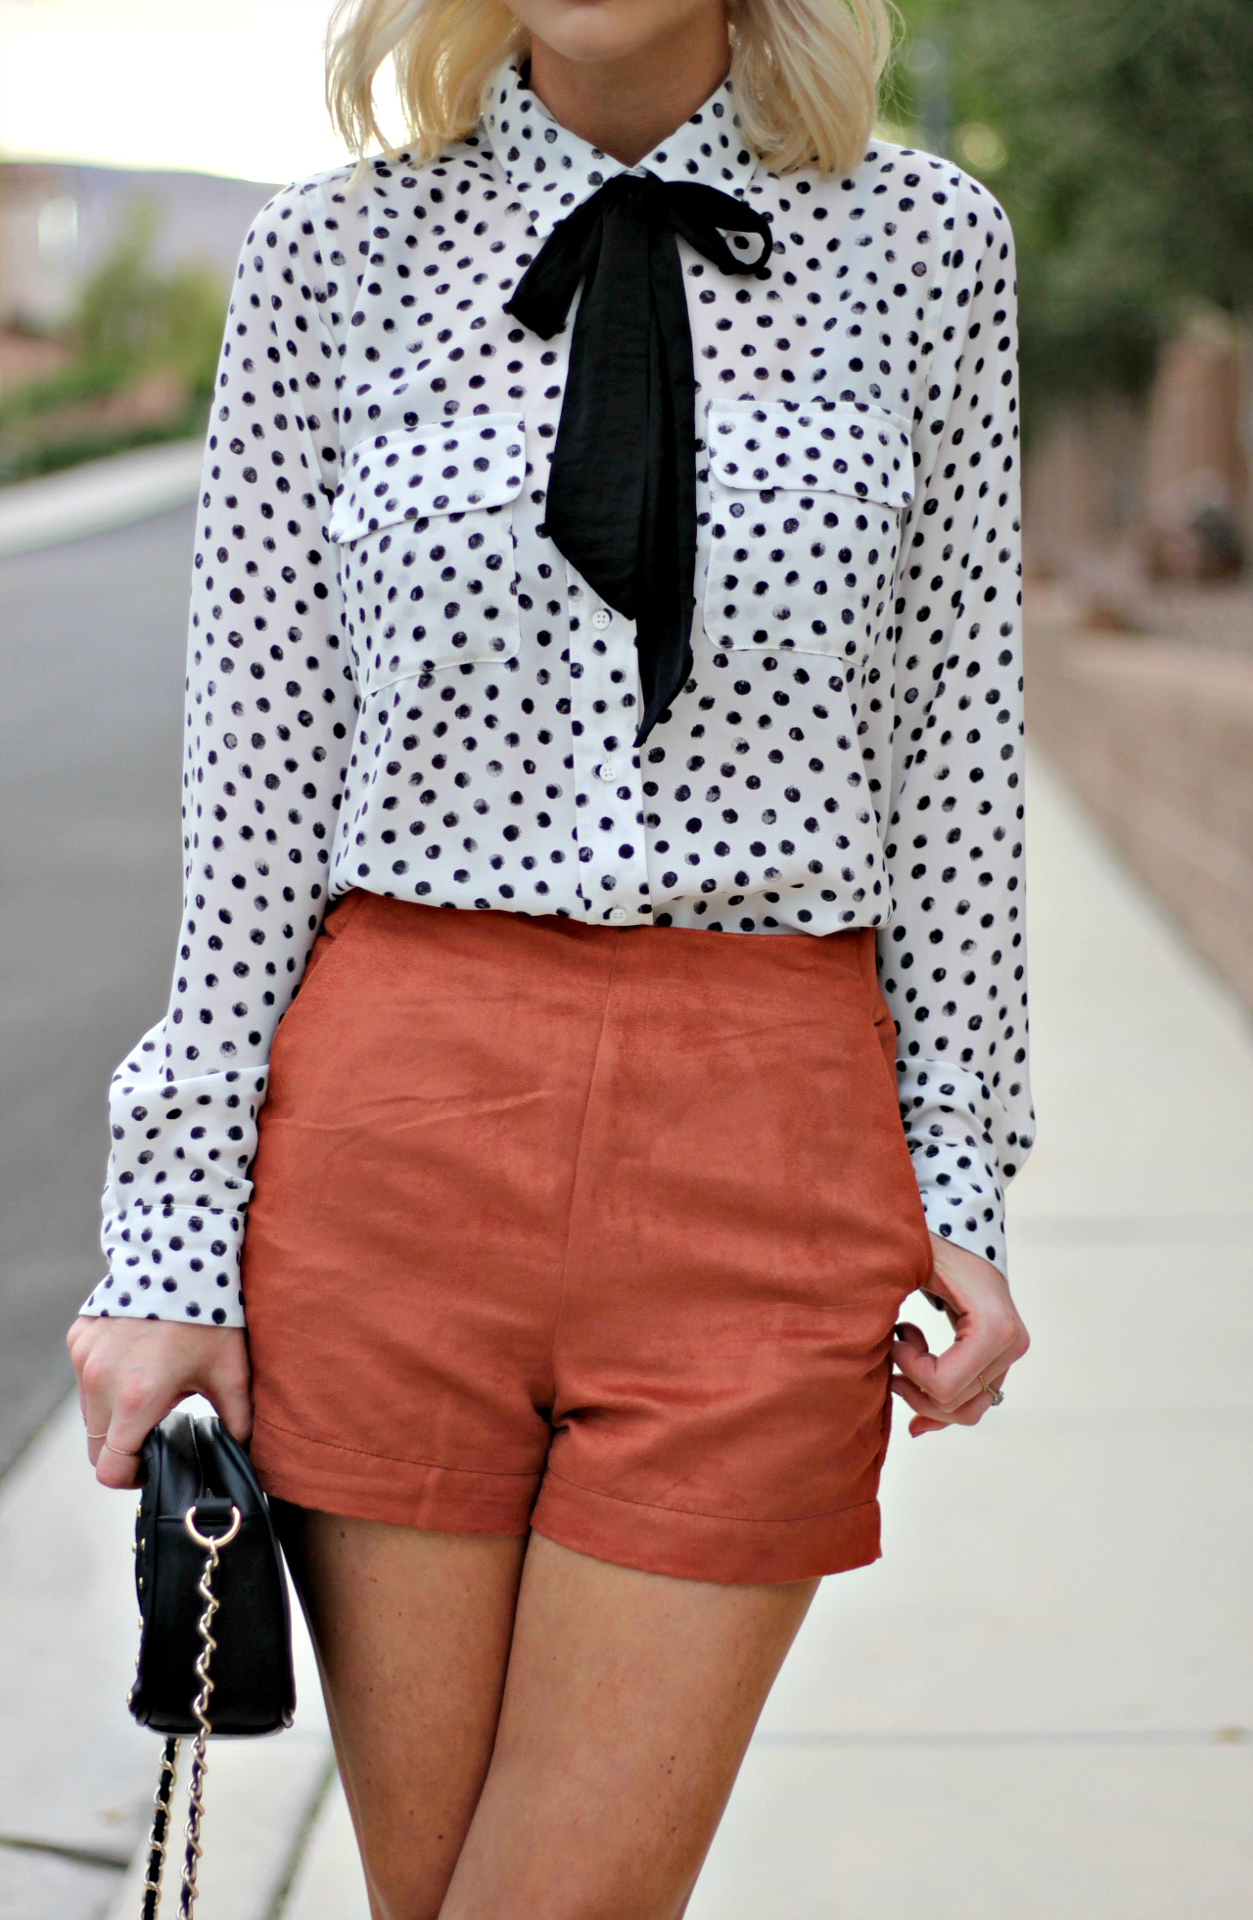 df37d40e8e36 suede-shorts-polka-dot-shirt-bow-blouse-studded-purse-lindsey-simon -the-nomis-niche-las-vegas-fashion-blogger-beauty-blogger-5